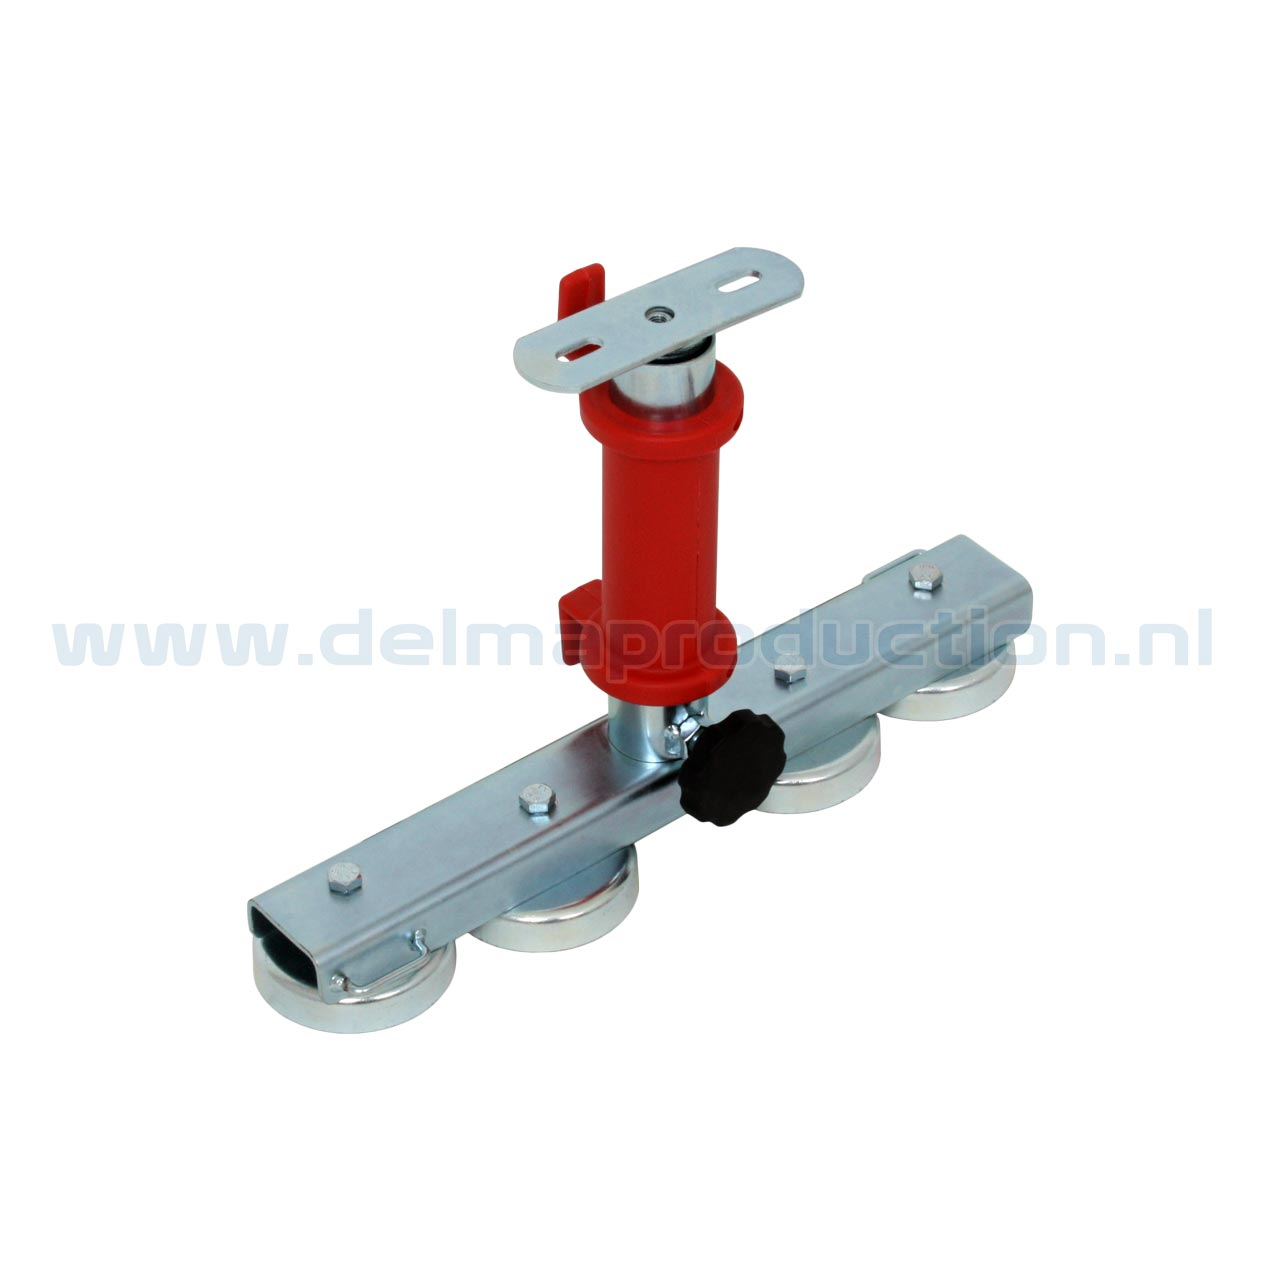 Magnet Work Light Stand with 4 magnets  (1)